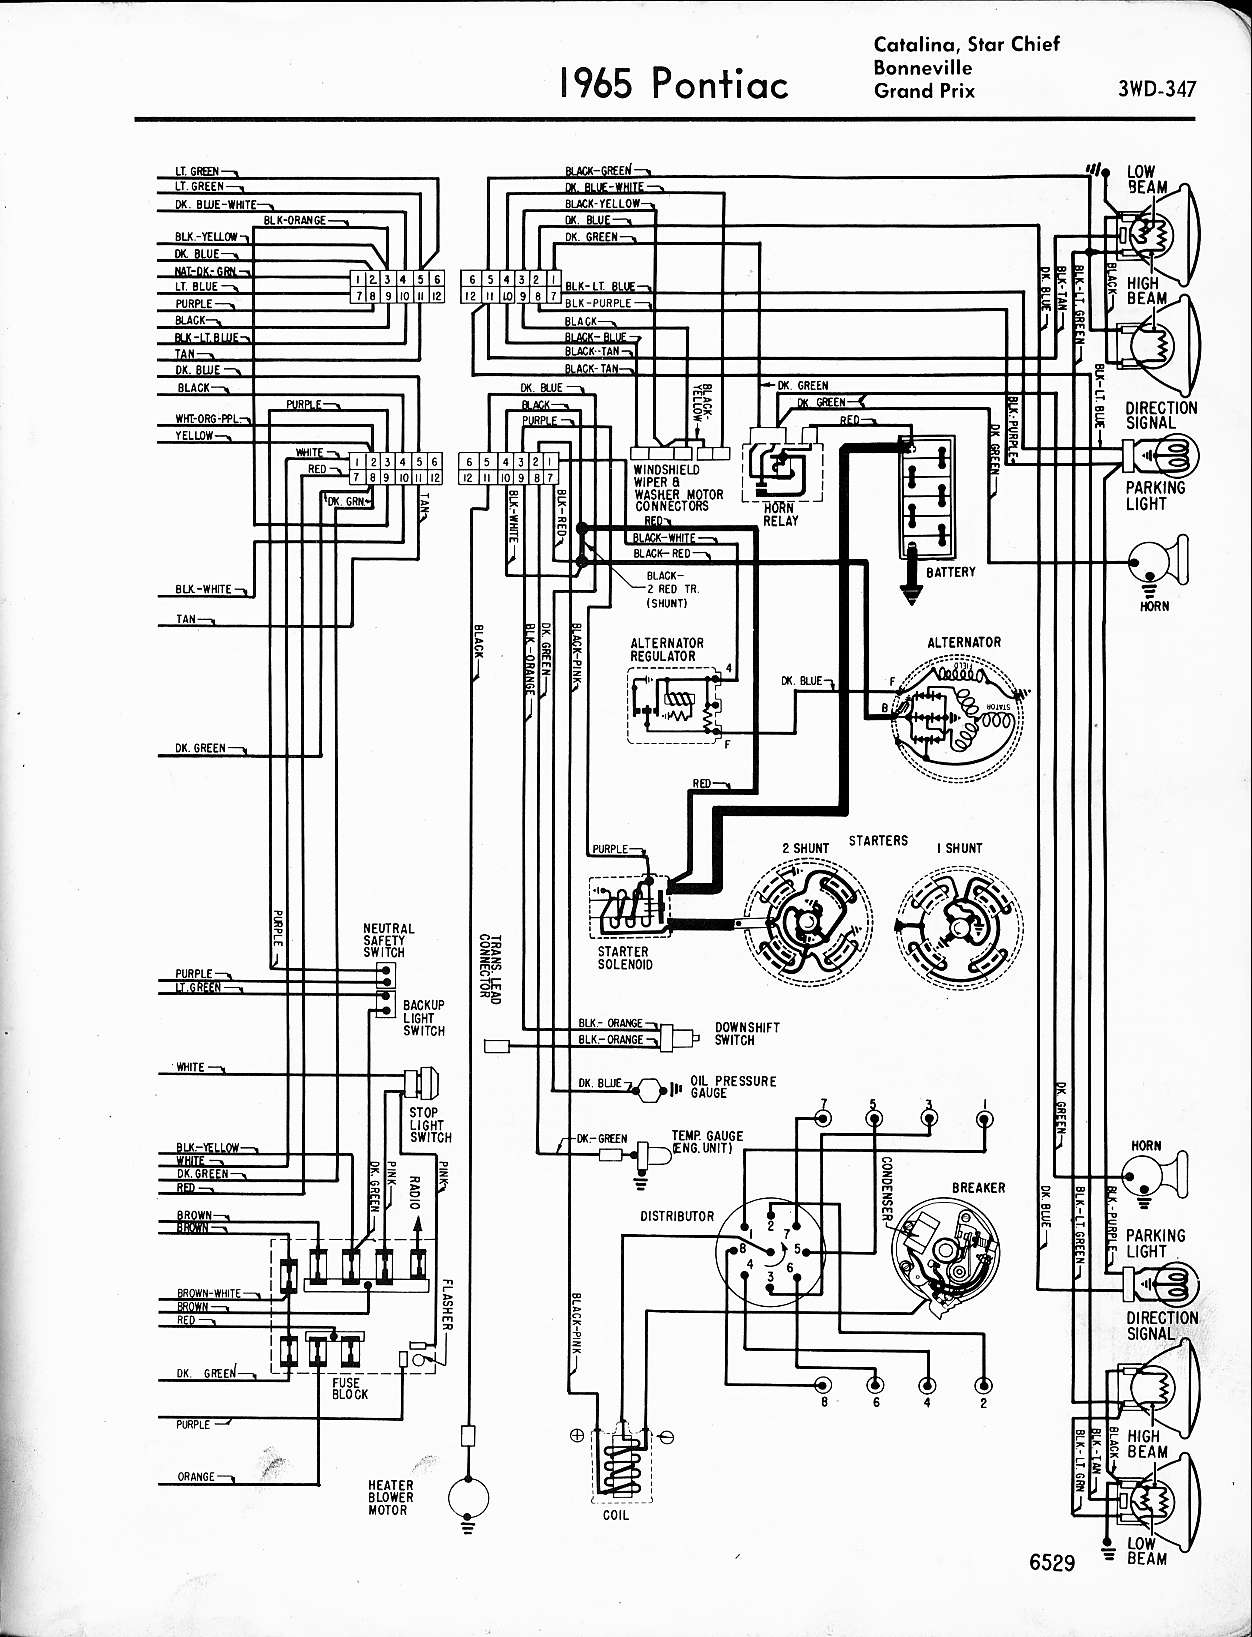 2003 pontiac wiring schematic reinvent your wiring diagram u2022 rh gearway  co 1997 Pontiac Sunfire GT 2003 Pontiac Sunfire Engine Diagram